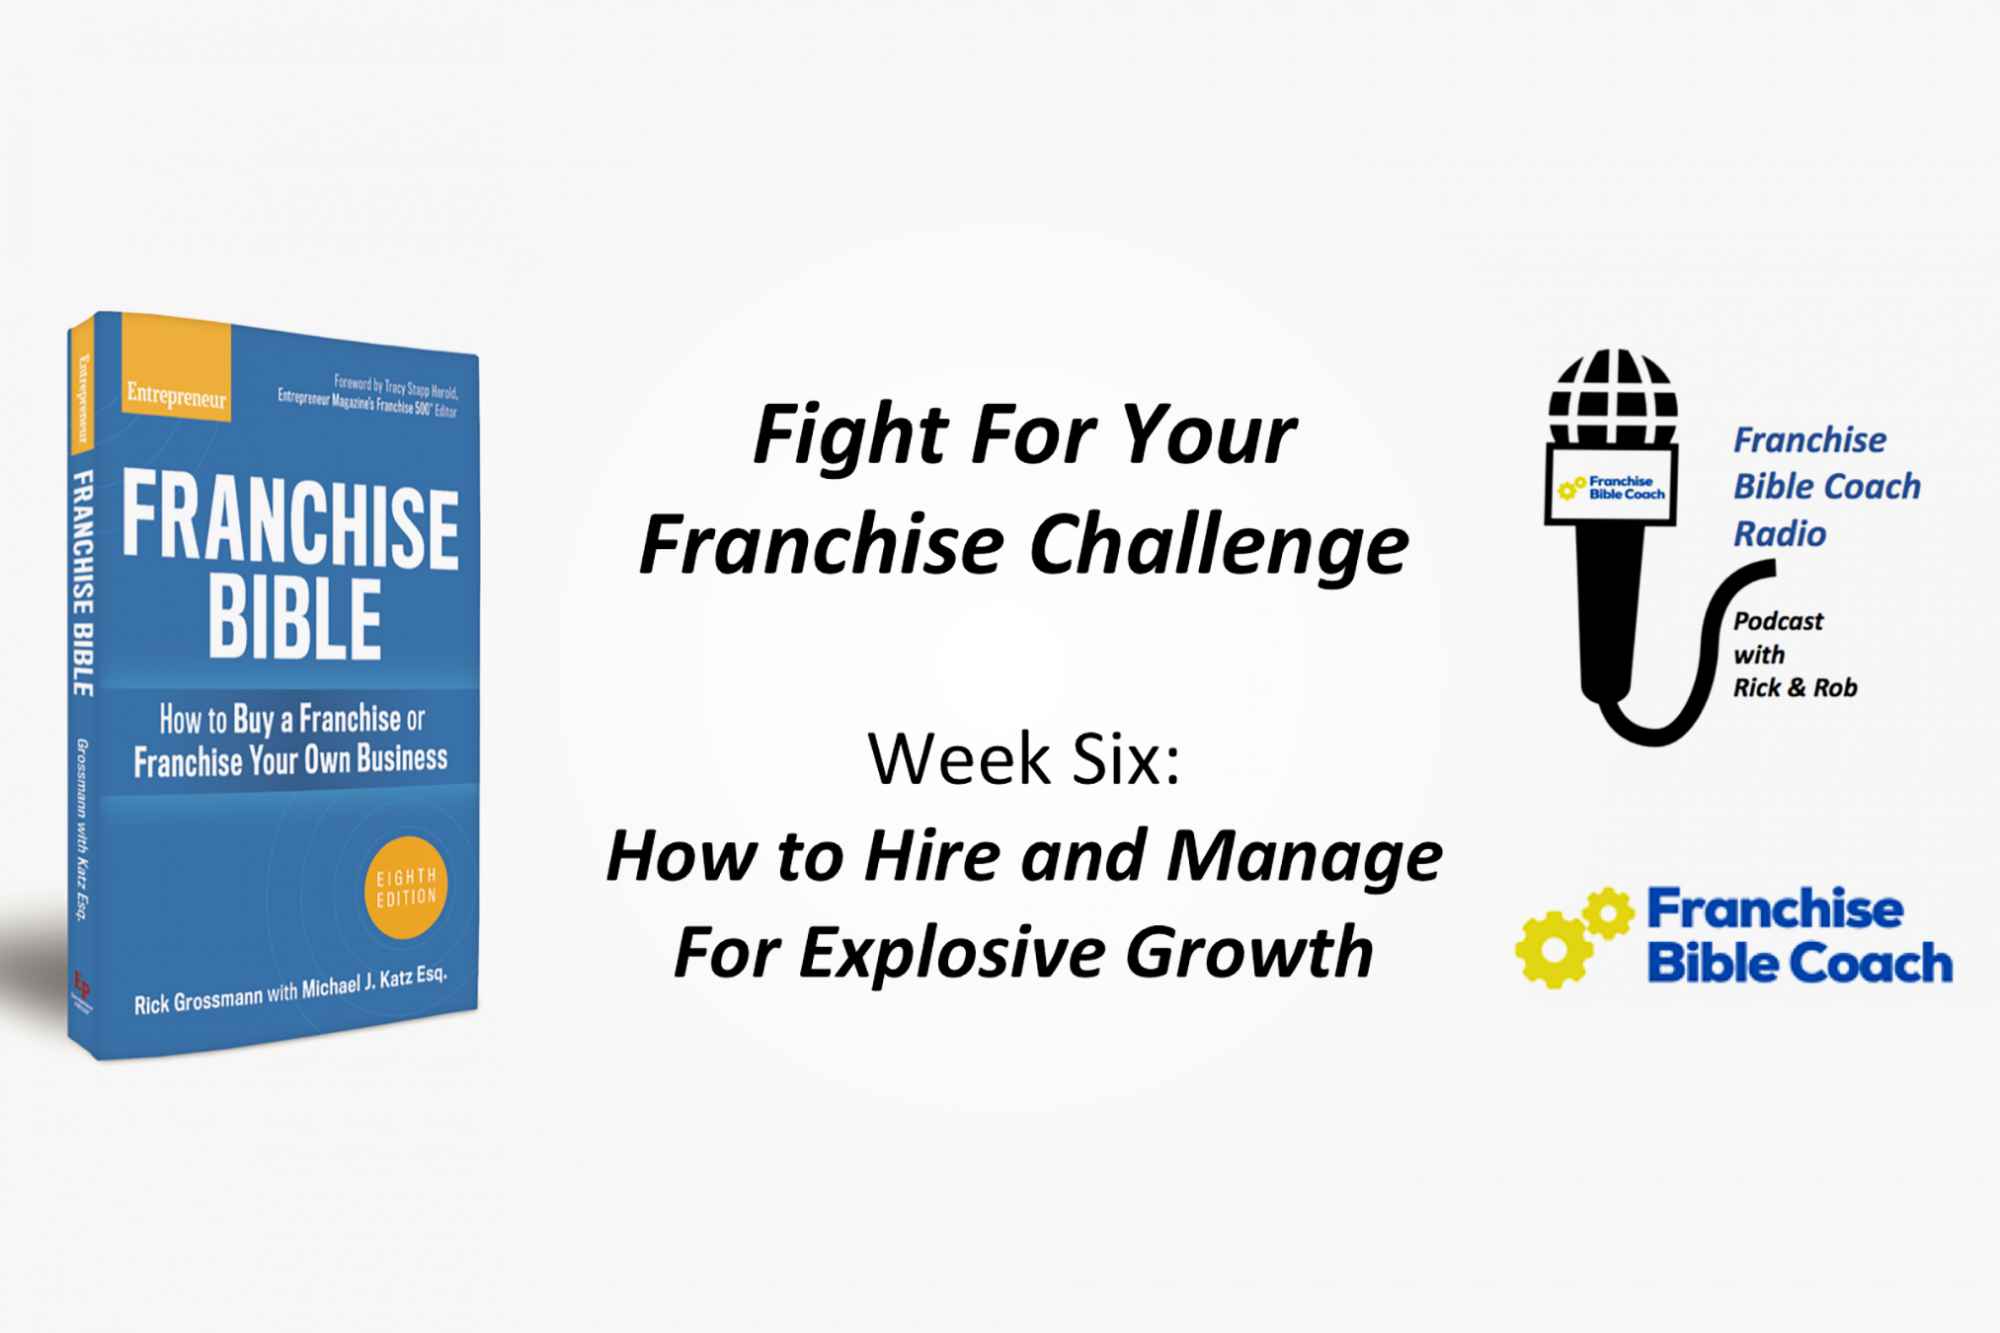 Fight for Your Franchise Challenge, Week 6: How to Hire and Manage for Explosive Growth